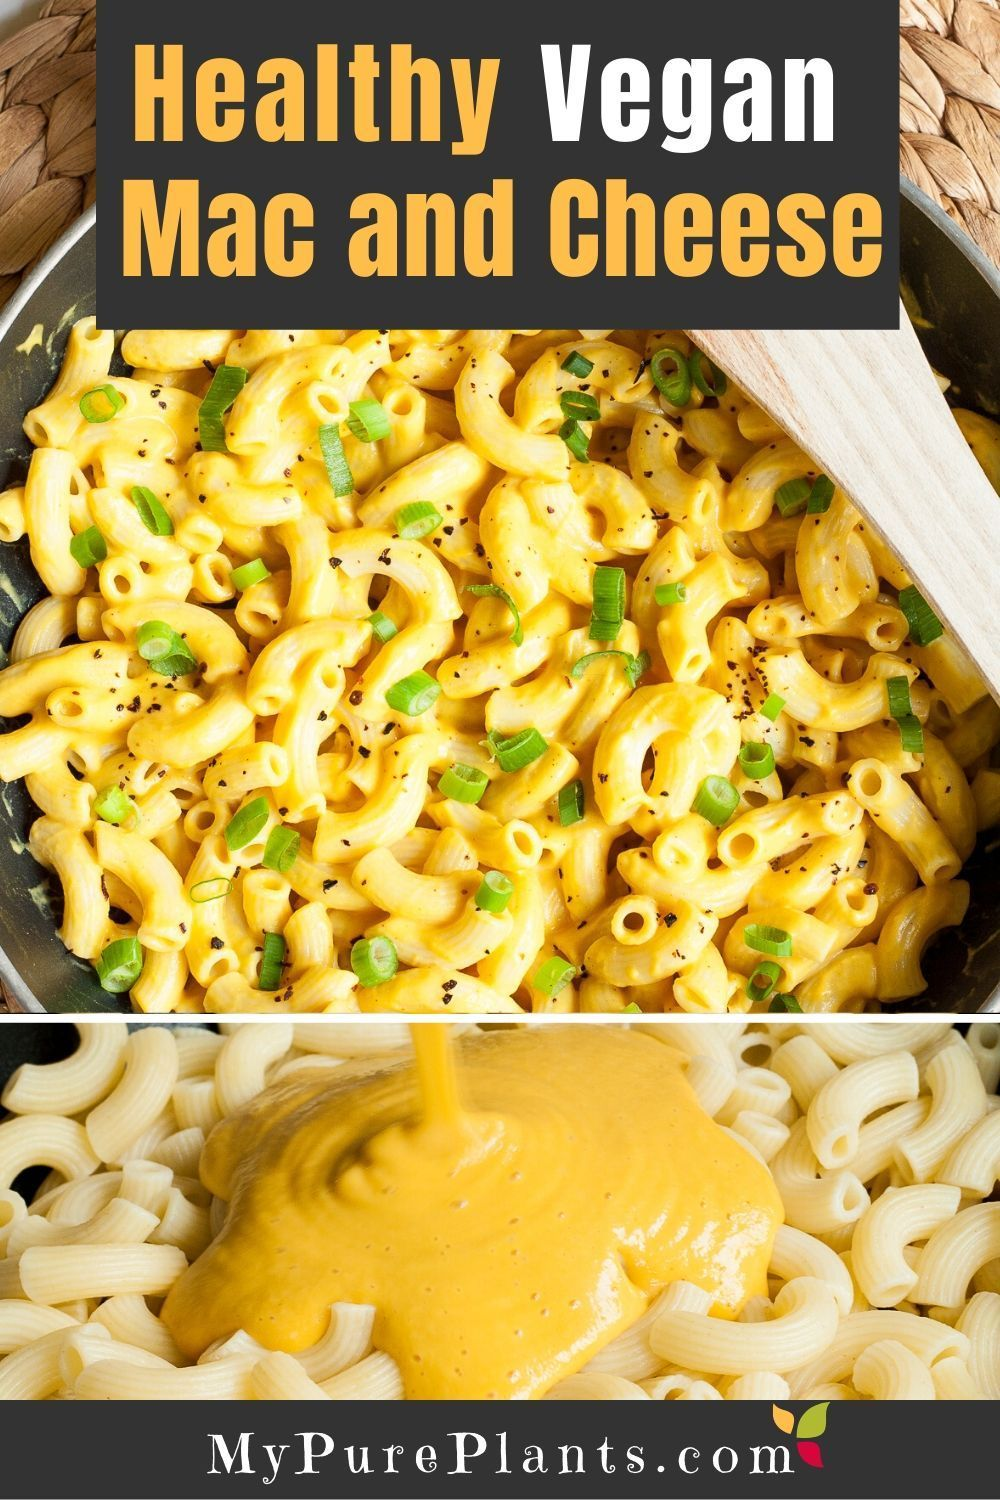 Healthy Vegan Mac And Cheese No Nuts Recipe In 2020 Vegan Mac And Cheese Vegan Recipes Healthy Mac And Cheese Healthy